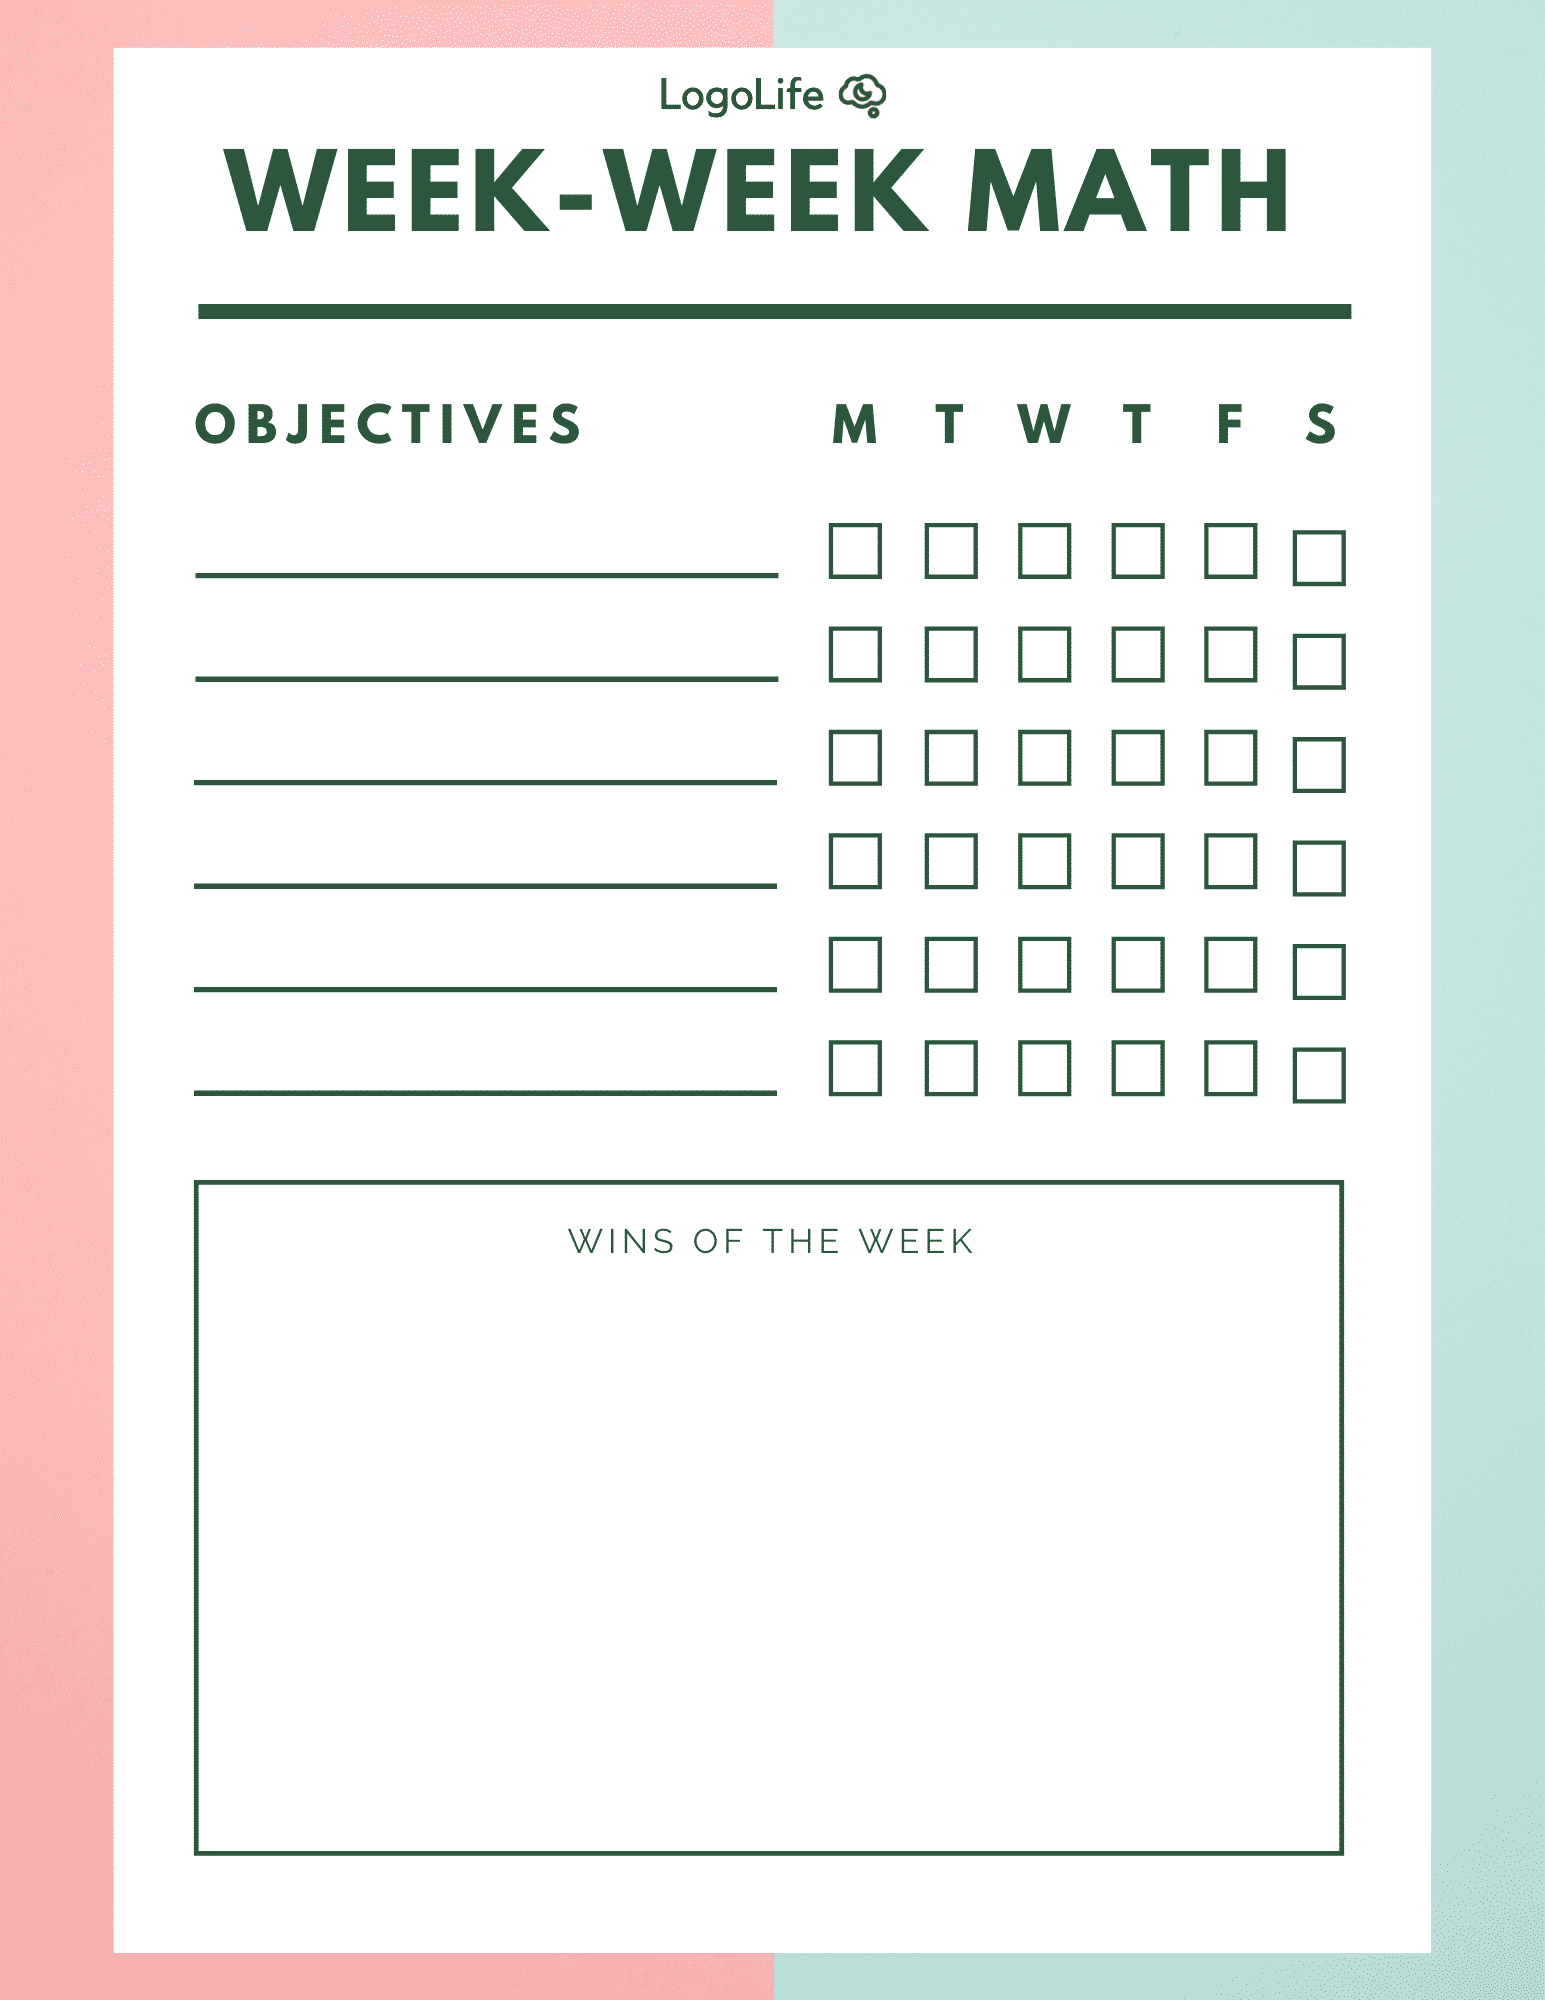 Weekly Planner Example 4 - LogoLife.png